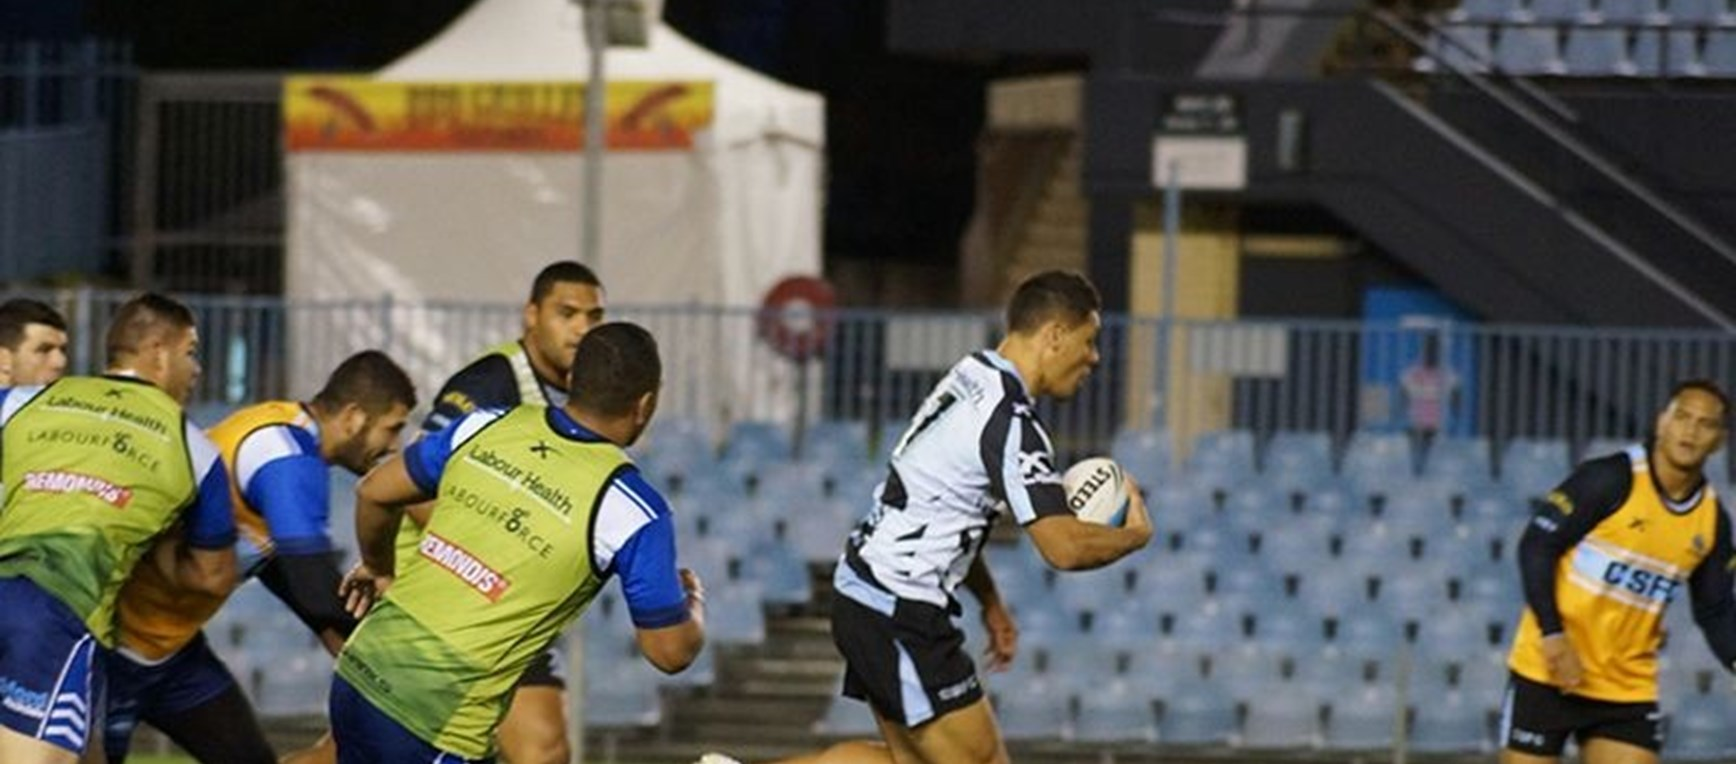 PHOTO GALLERY | Sharks step up preparations